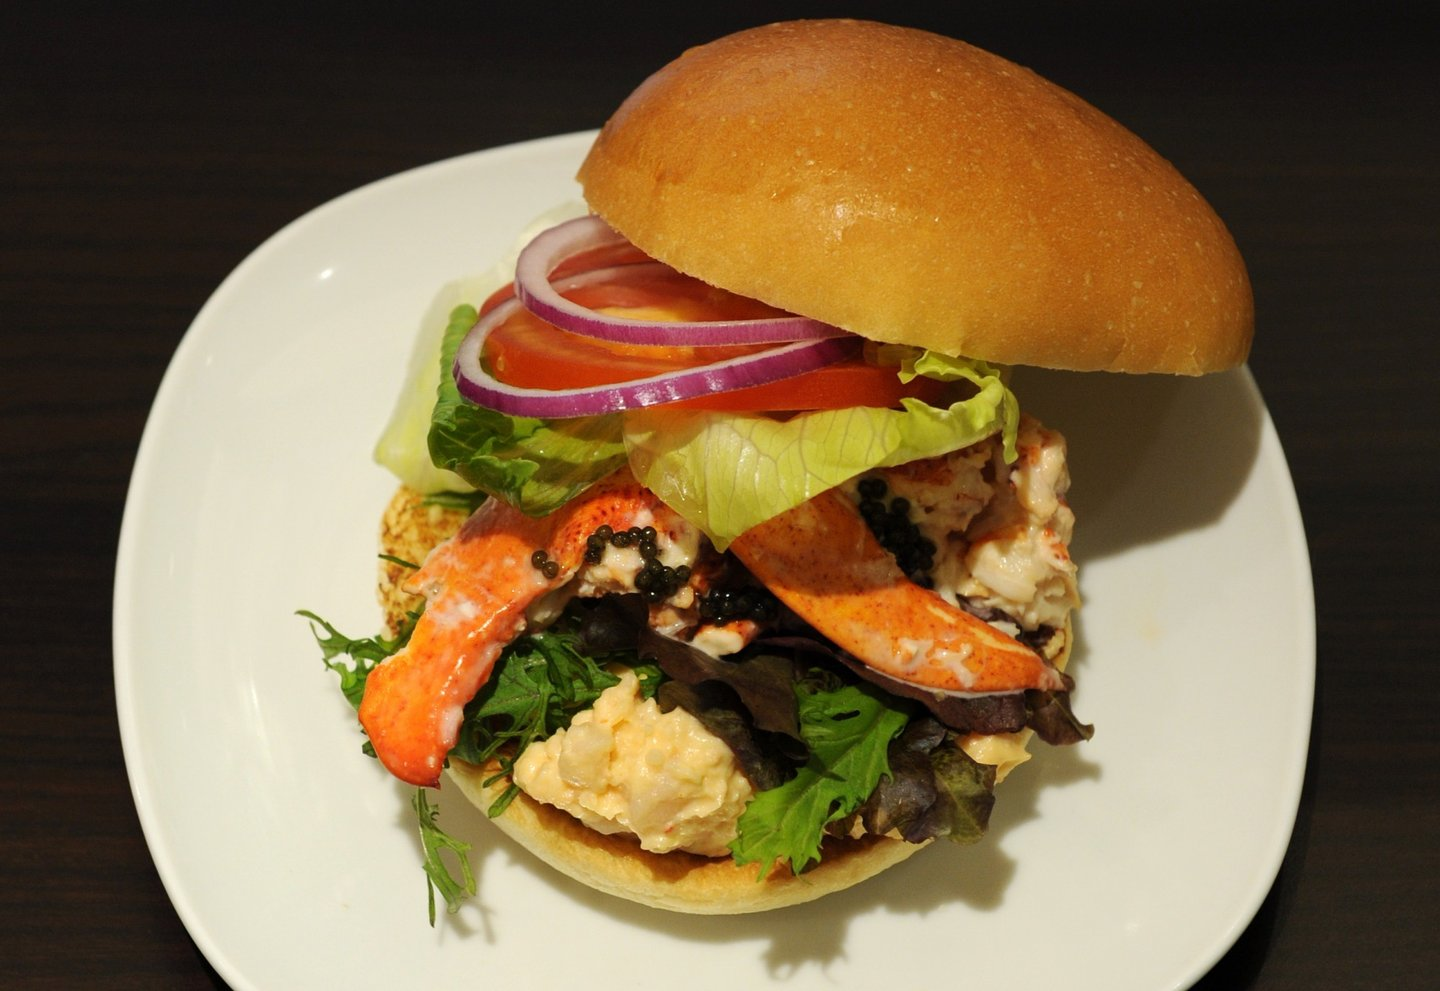 This picture shows the Lobster and Caviar burger featuring Canadian lobster and contains whole lobster pieces as well as a lobster salad made with a mustard mayonnaise as well as a sprinkle of caviar produced by Wendy's Japan as part of the campany's opening of their second restaurant in Roppongi, Tokyo on August 17, 2012. Wendy's Japan introduced two new burgers to their Japan Premium line of burgers which features fancy ingredients.      AFP PHOTO / KAZUHIRO NOGI        (Photo credit should read KAZUHIRO NOGI/AFP/GettyImages)